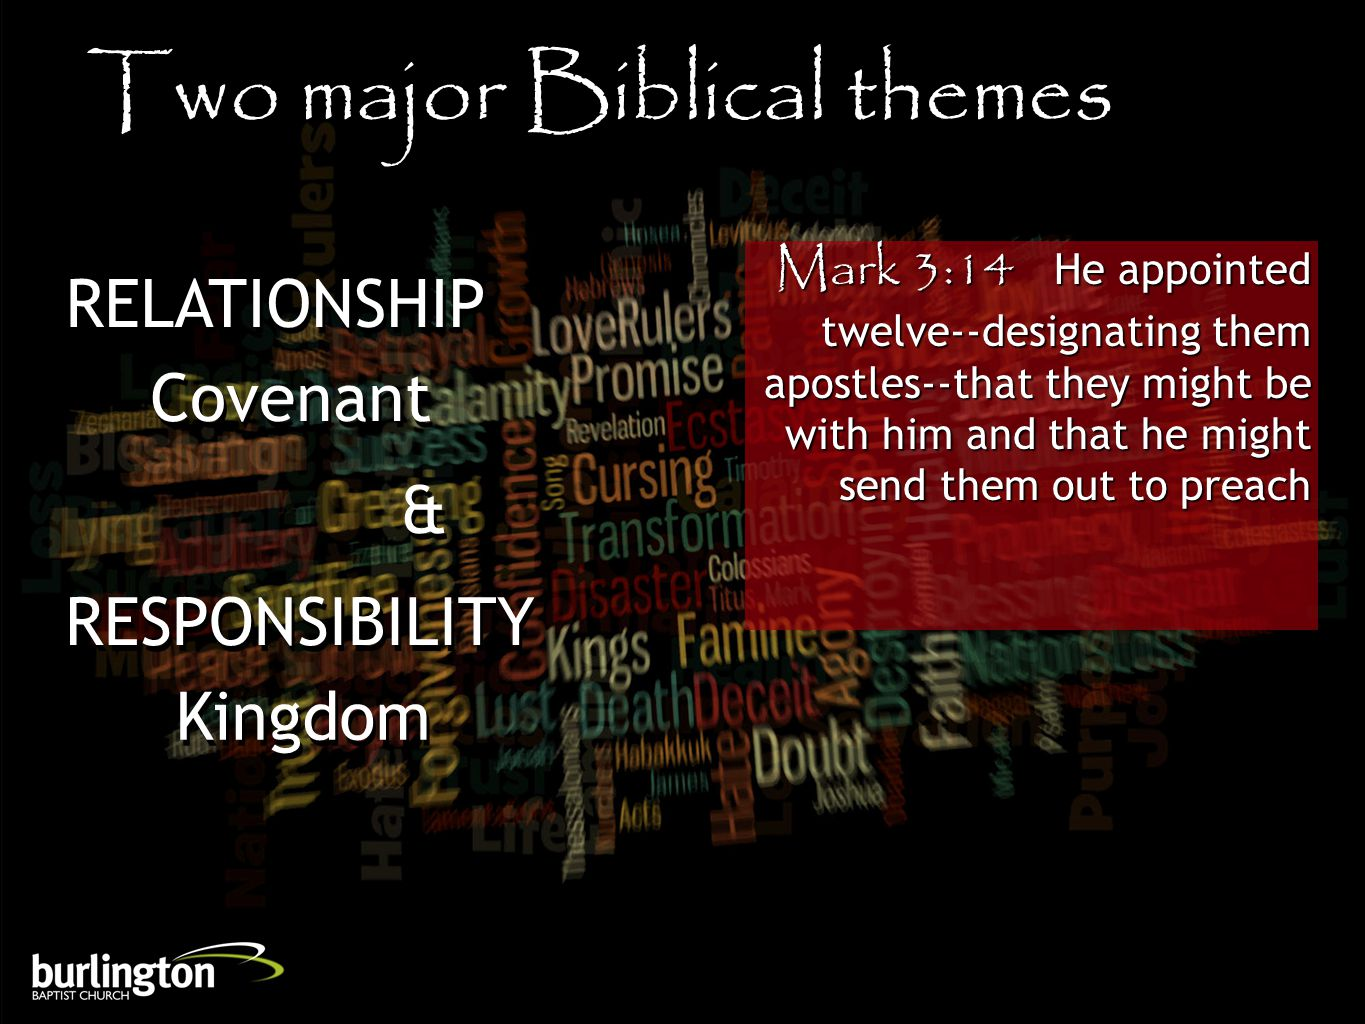 Mark 3:14 He appointed twelve--designating them apostles--that they might be with him and that he might send them out to preach Two major Biblical themes RELATIONSHIP Covenant & & Kingdom RESPONSIBILITY